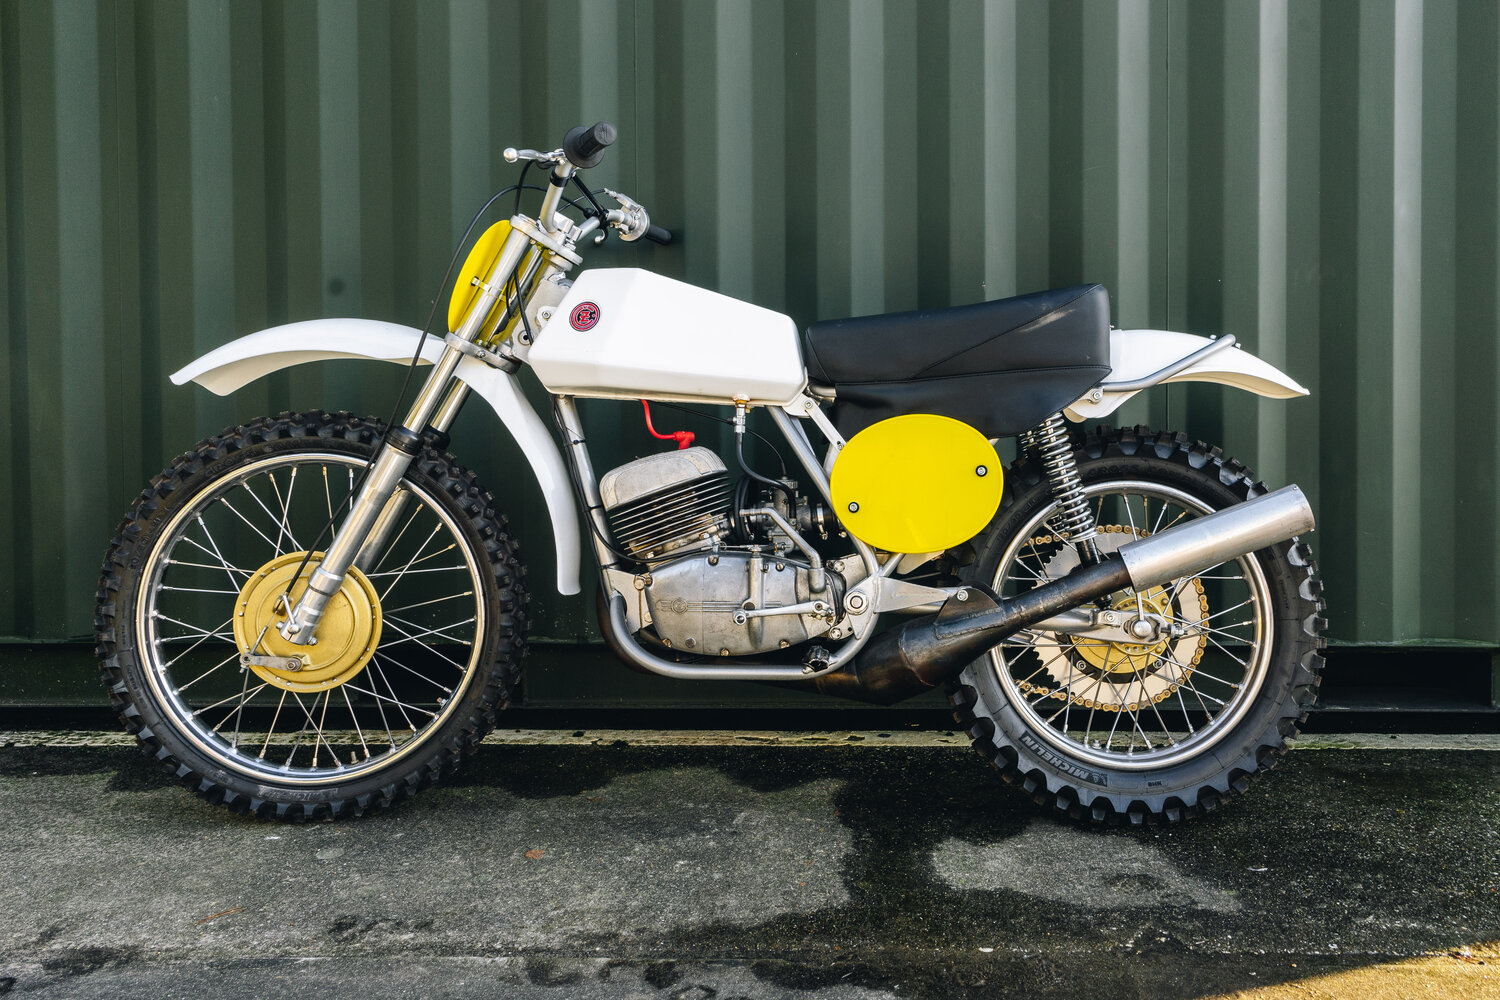 1972 CZ 250cc Moto Cross Excellent, Restored! For Sale (picture 1 of 10)